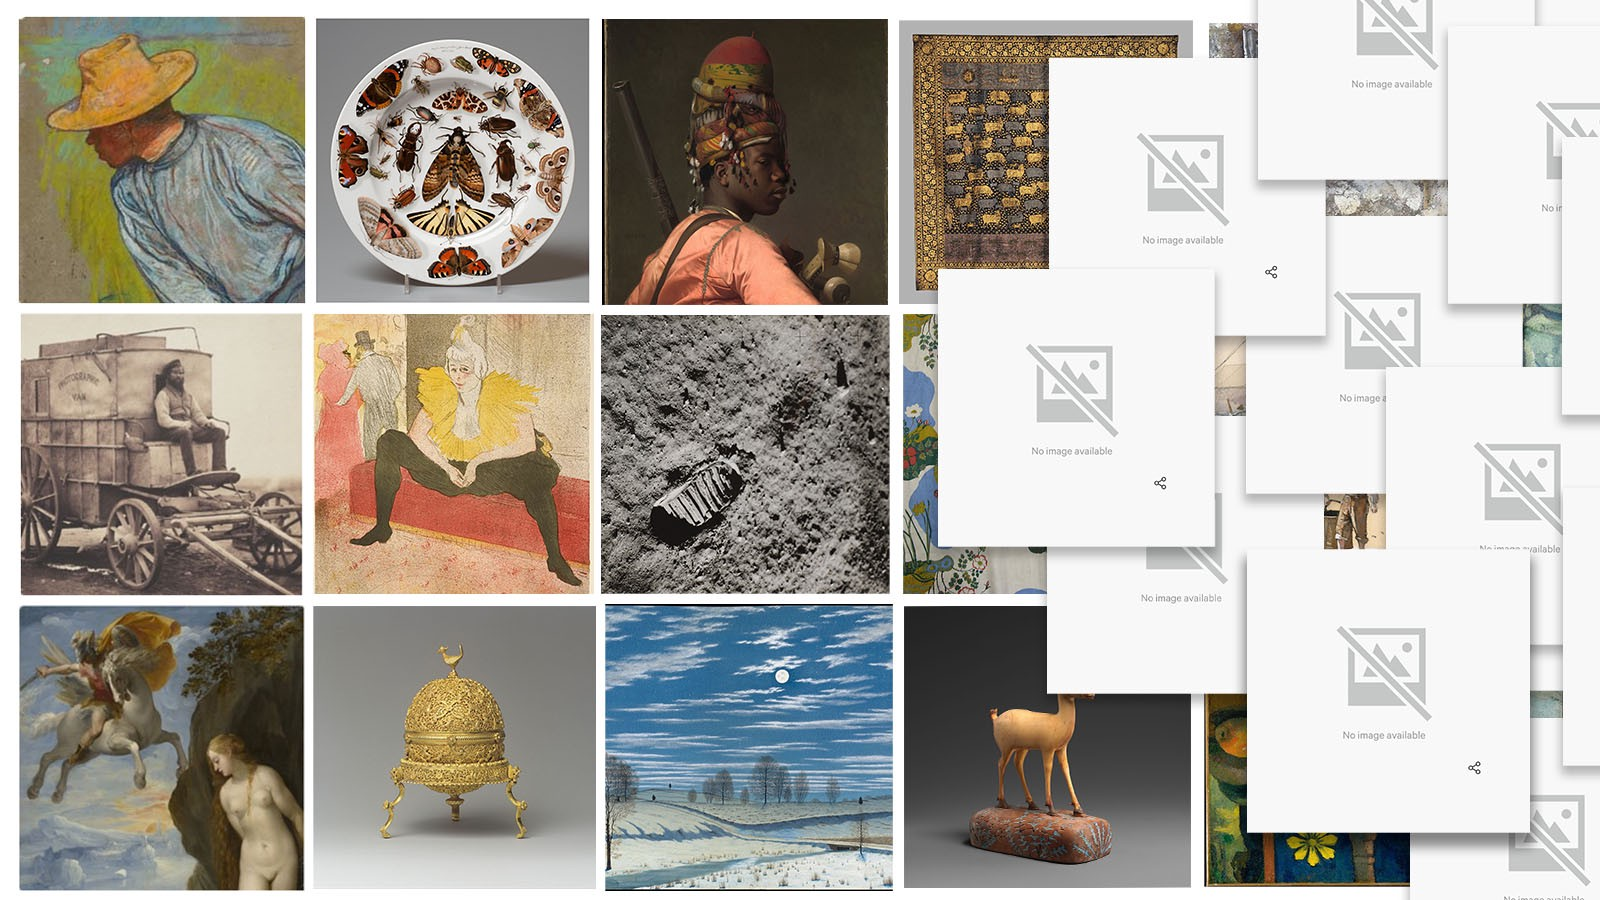 """A series of permanent collection images from various museums, eventually eclipsed by """"No Image Available"""" icons"""